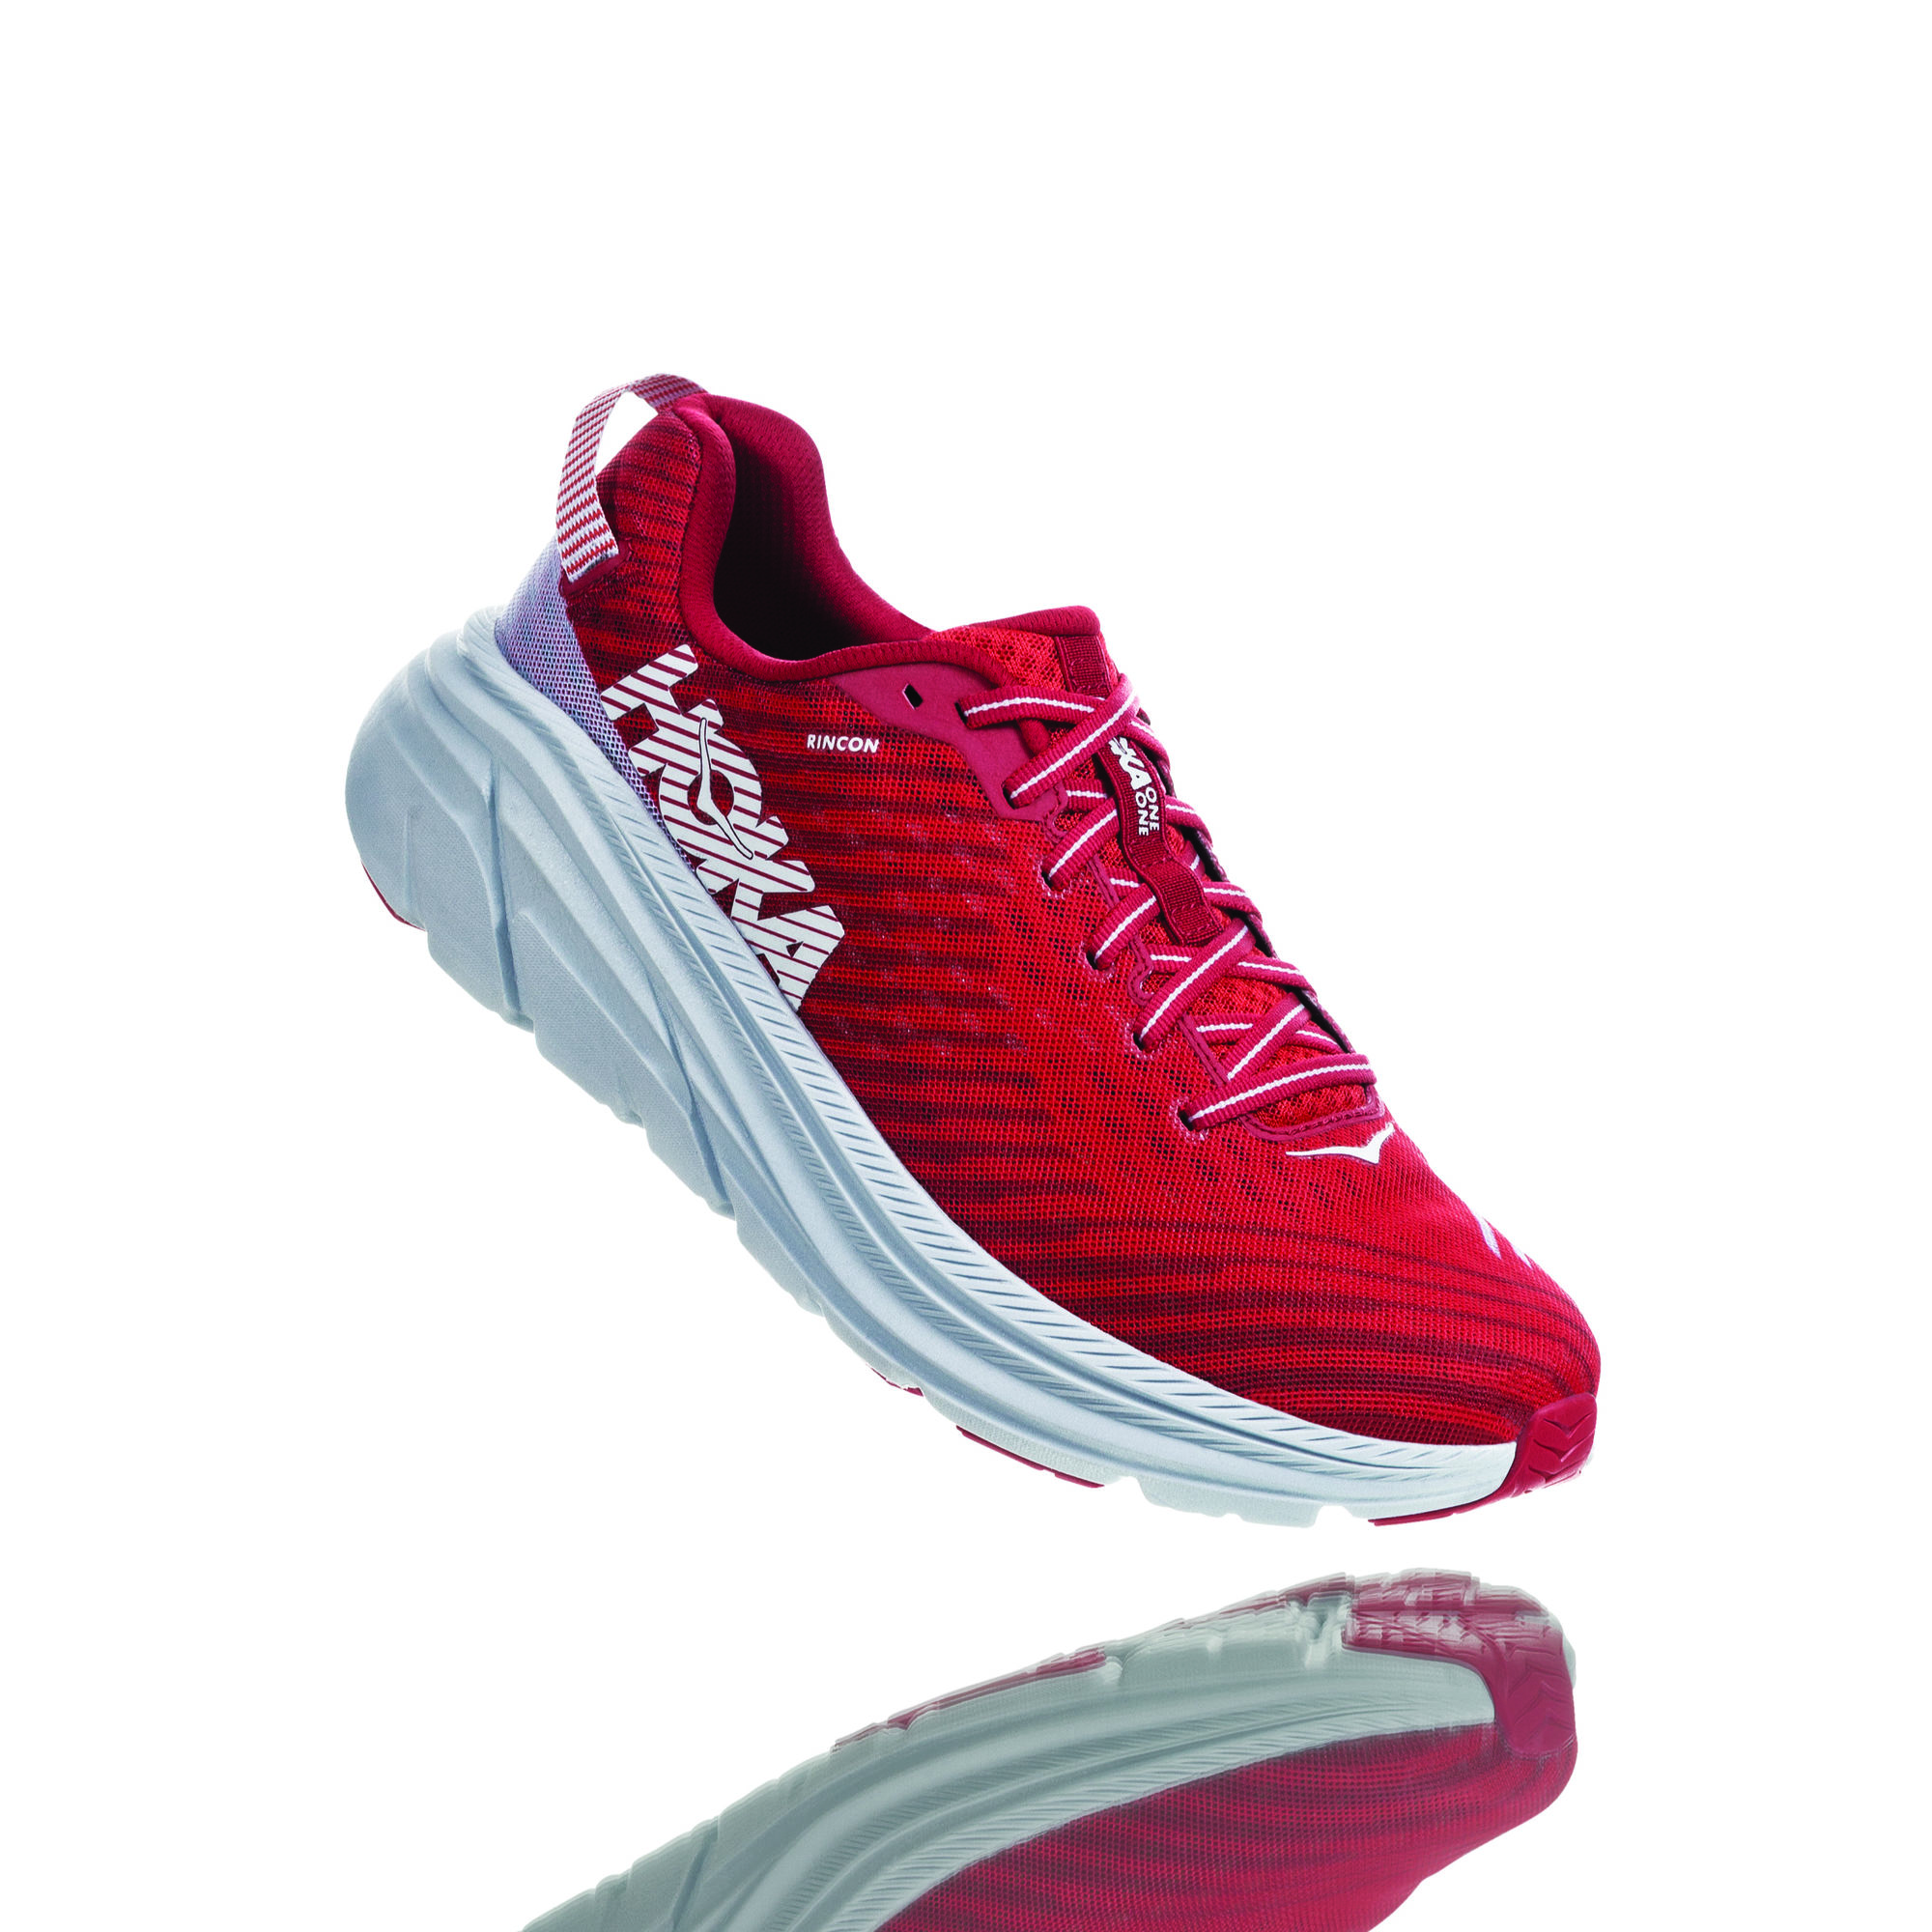 Hoka One One Rincon (Barbados Cherry Plein Air)